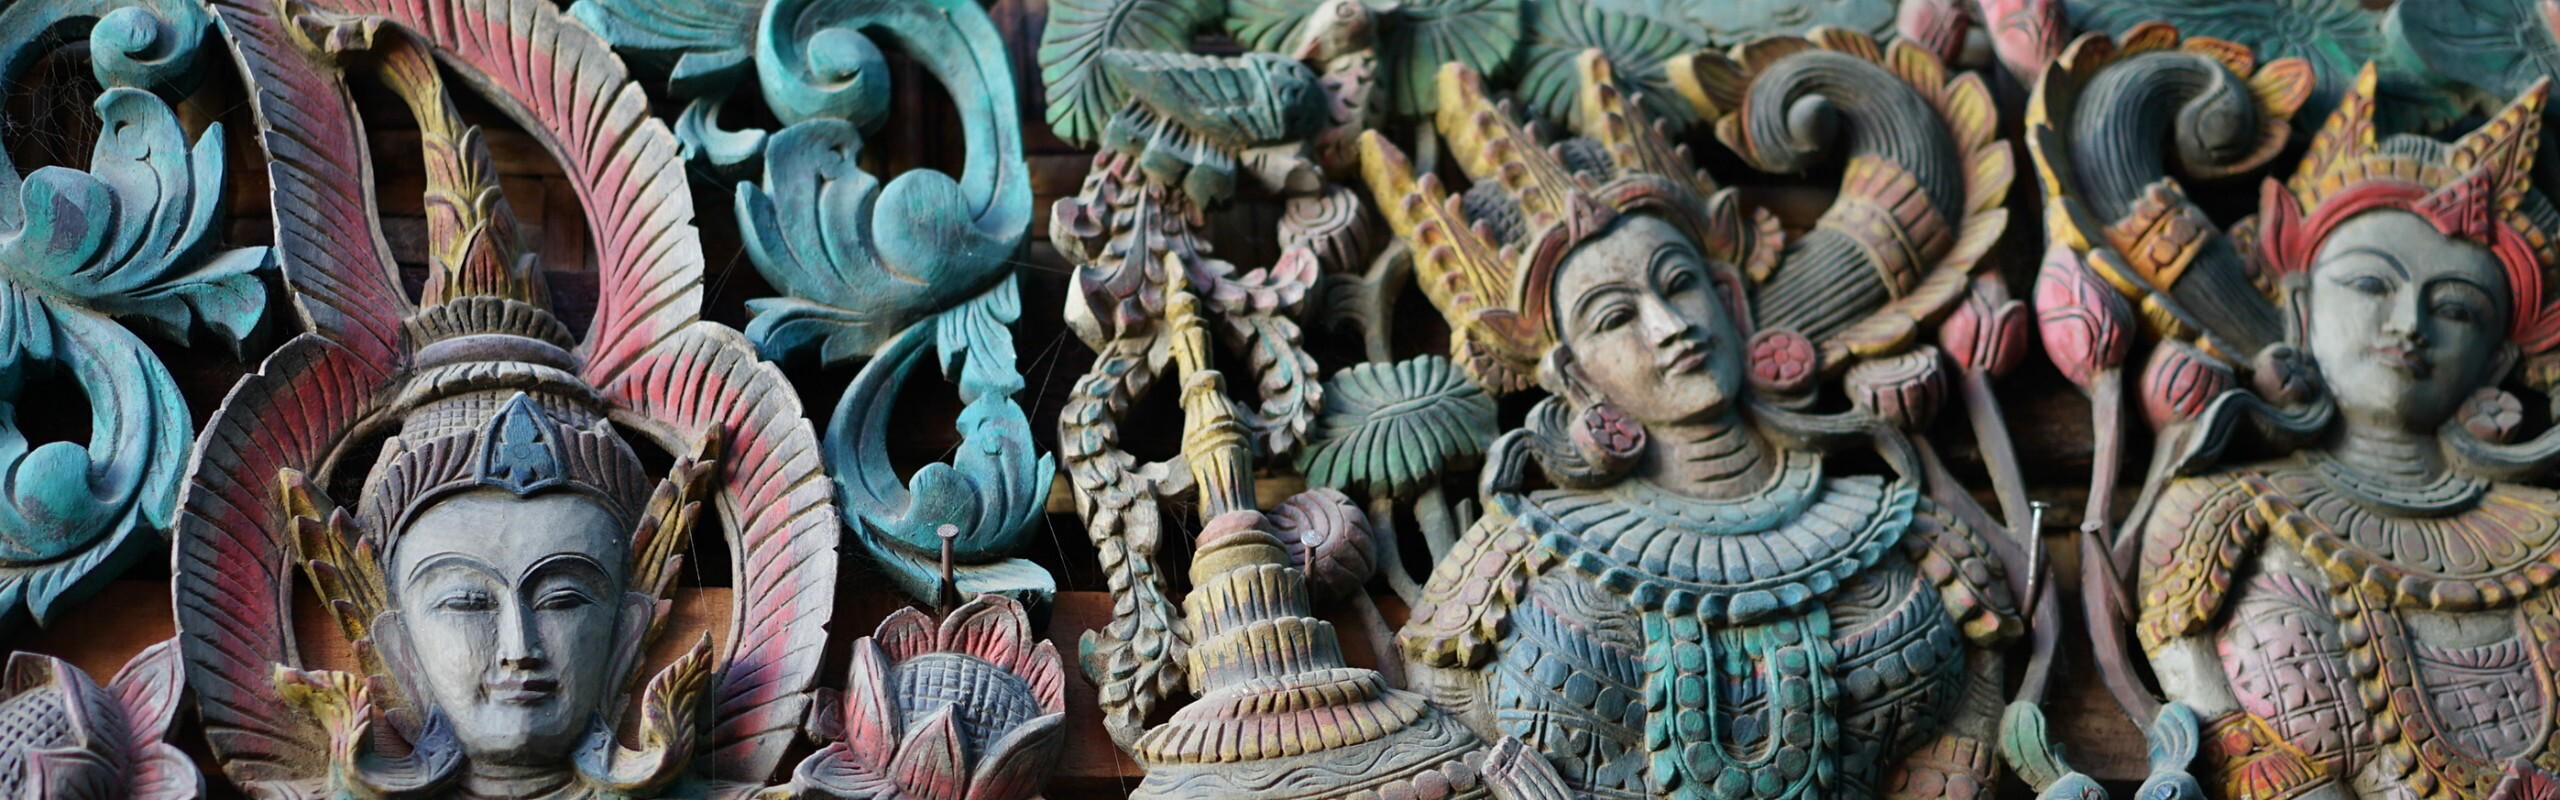 Shopping in Bagan - Traditional Handicrafts